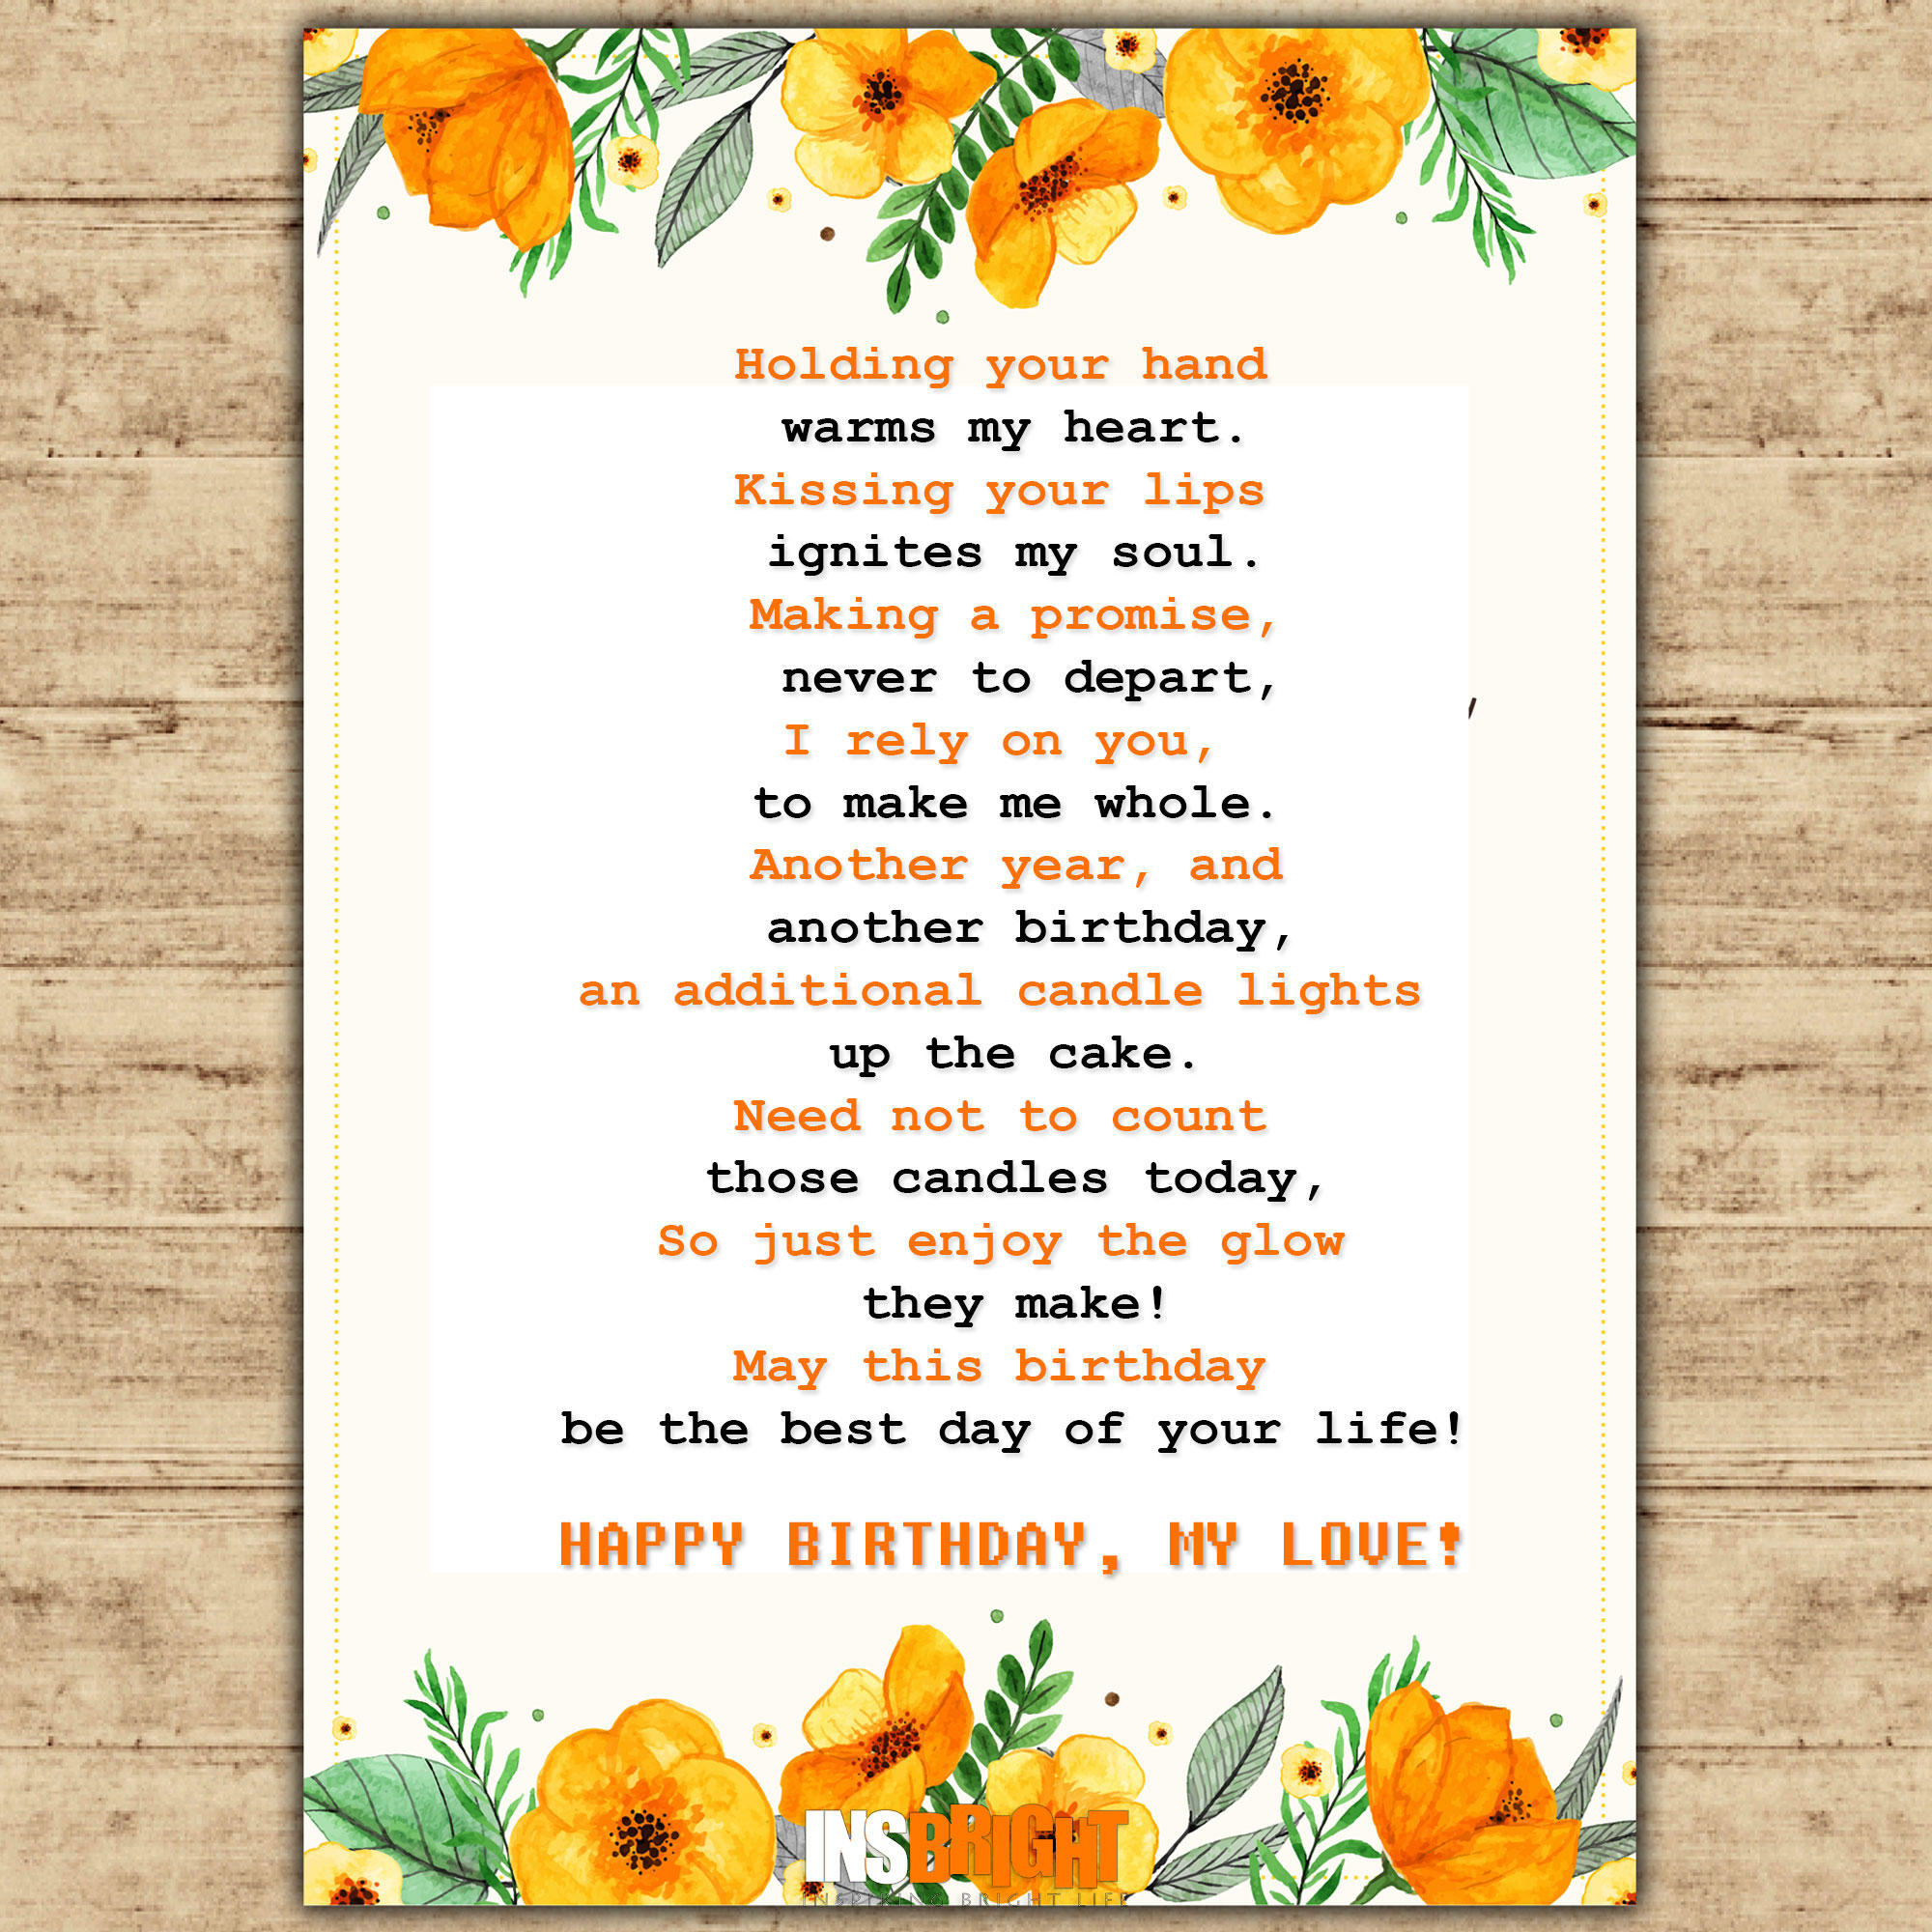 Funny Happy Birthday Poems For Husband: Romantic Happy Birthday Poems For Husband From Wife